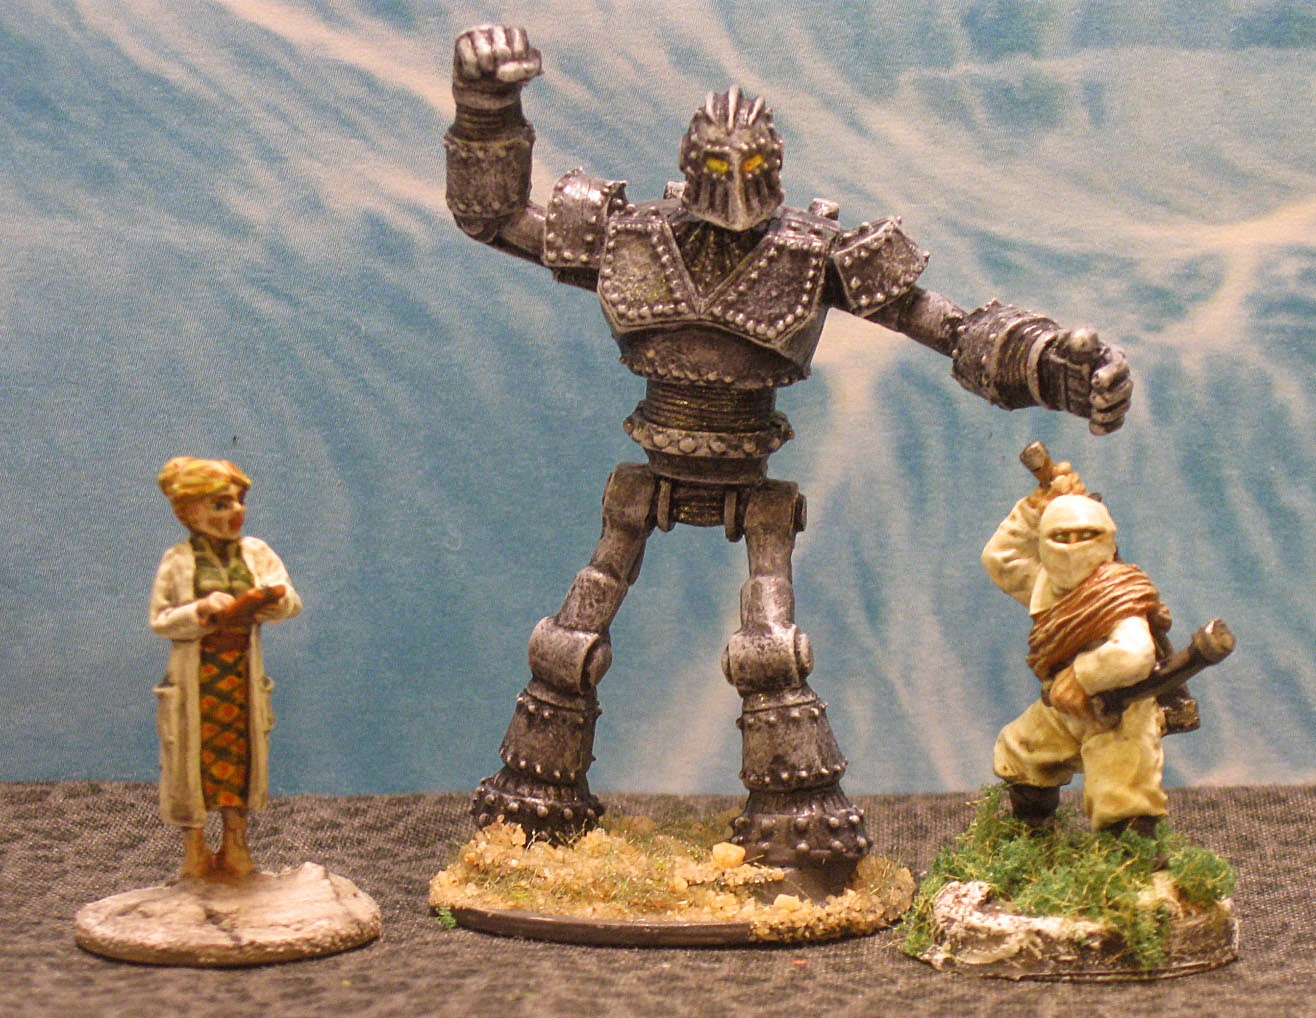 Suck on the weird 28mm weird world war 2 ptd minis for sale citadel ninja brigade games lab assistant and a silver age sentinels robot publicscrutiny Image collections